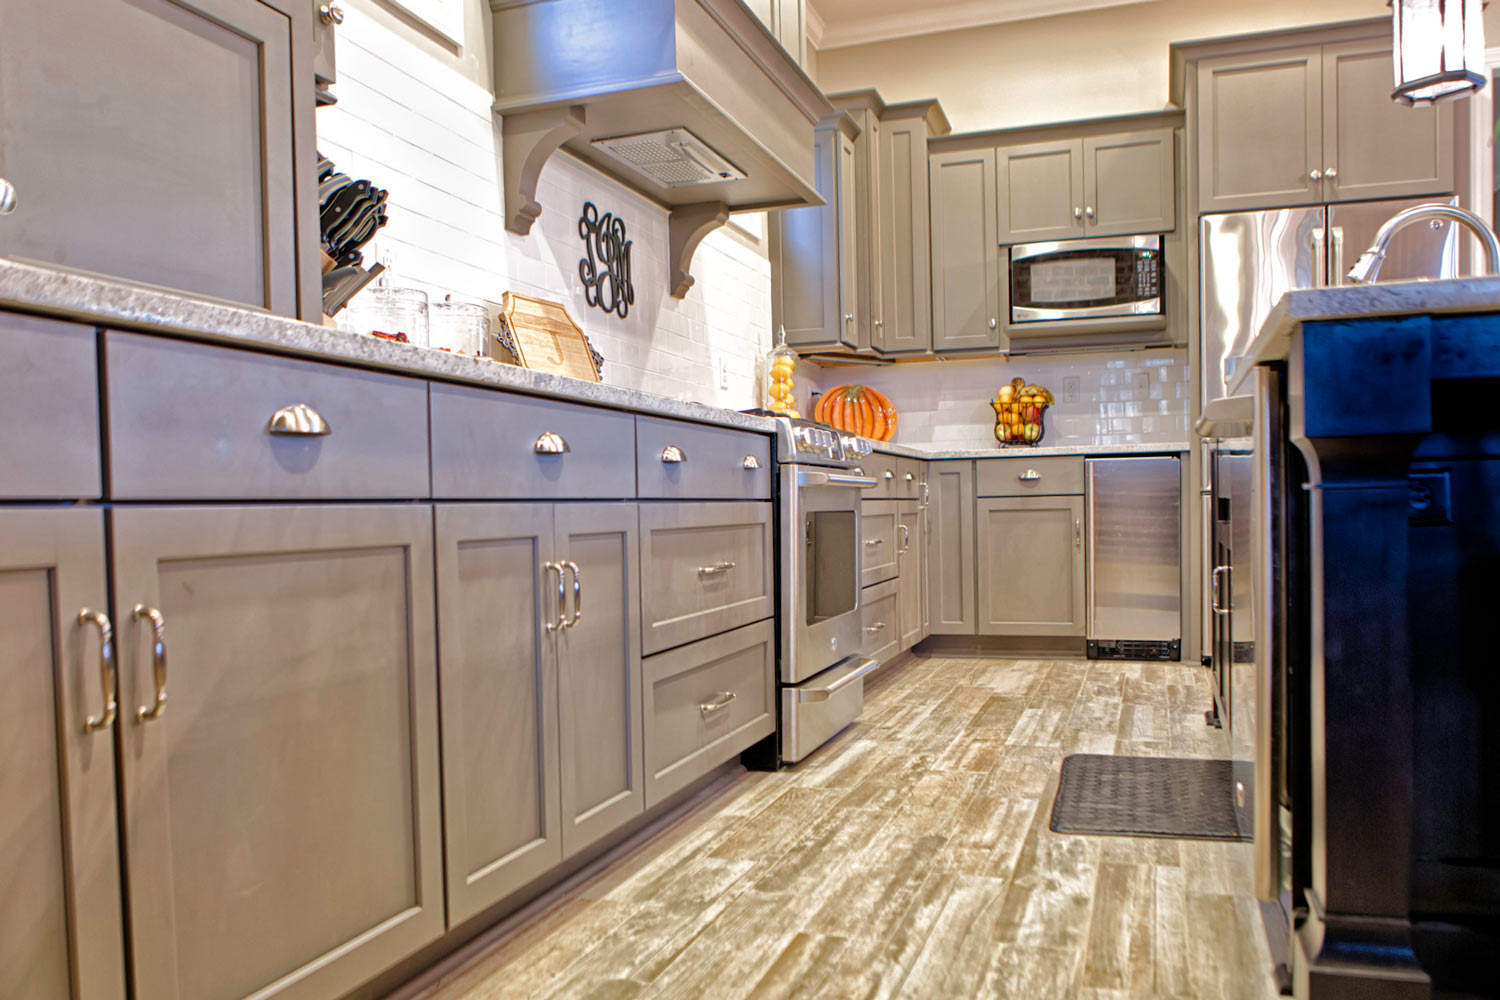 The kitchen cabinetry is by Integrity. It is a semi-custom design.